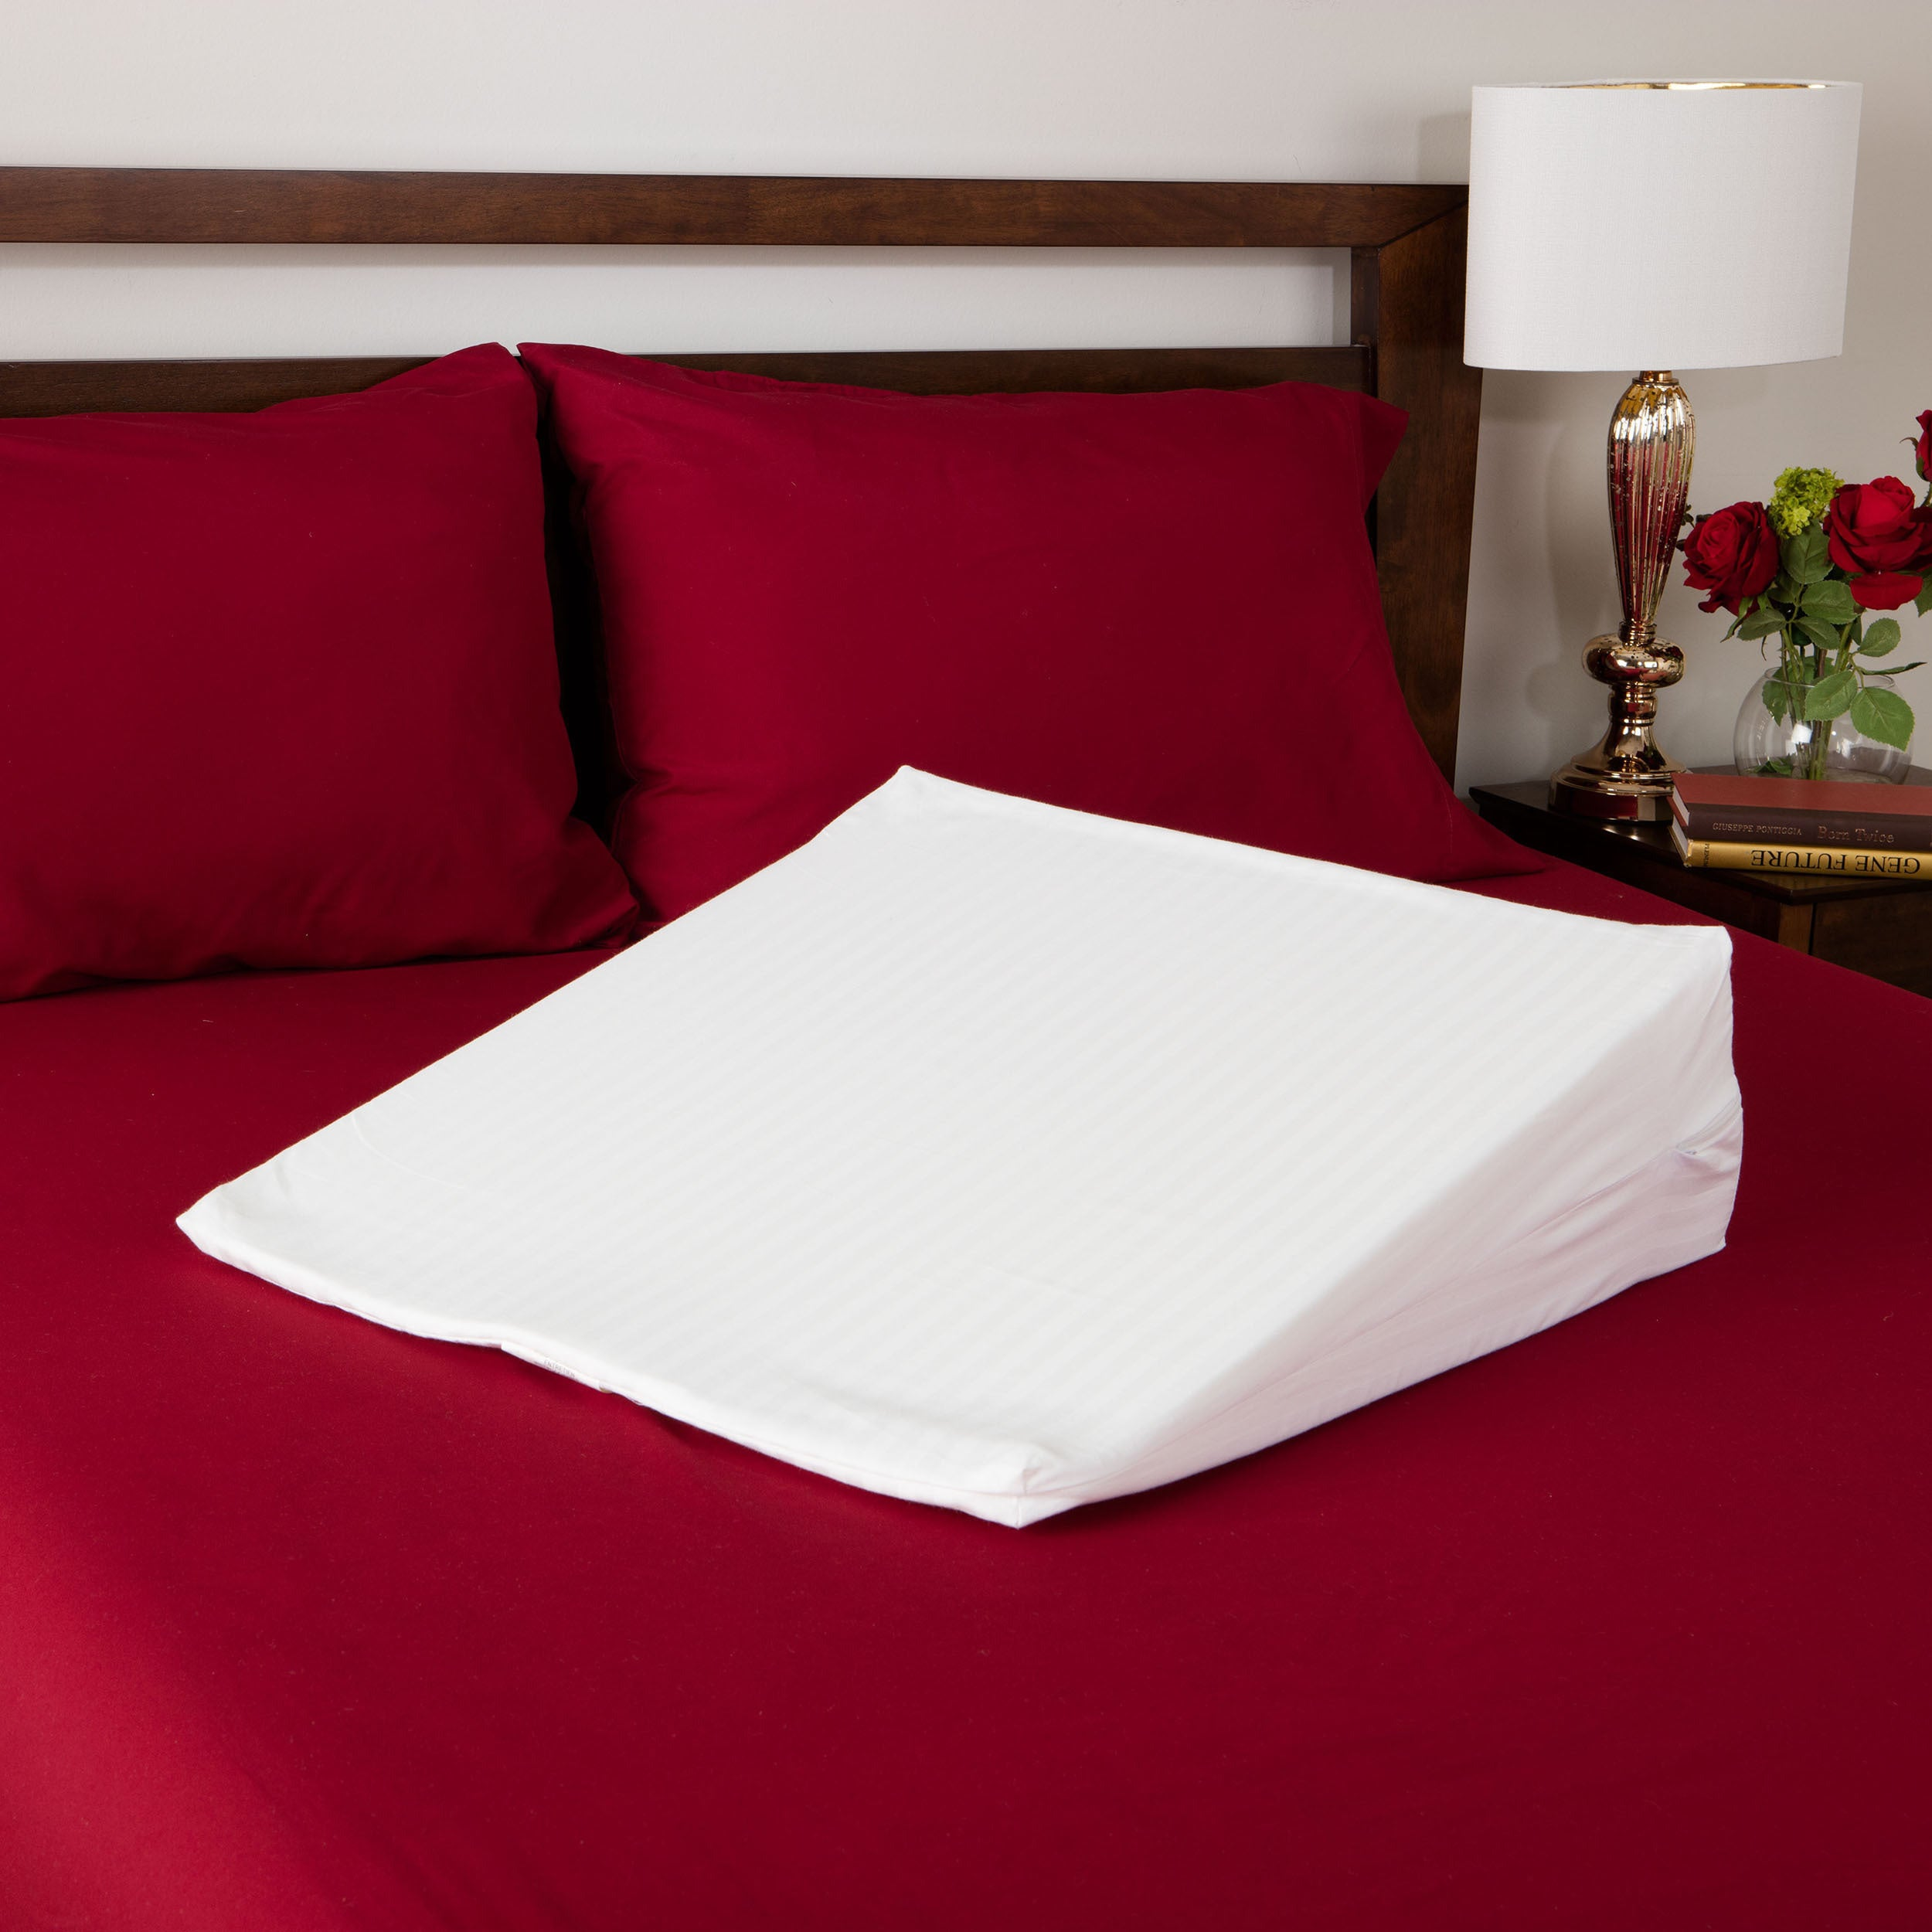 Foam Bedding Wedge Pillow Tilter For Bed Resting Extra Comfortablen and Relief